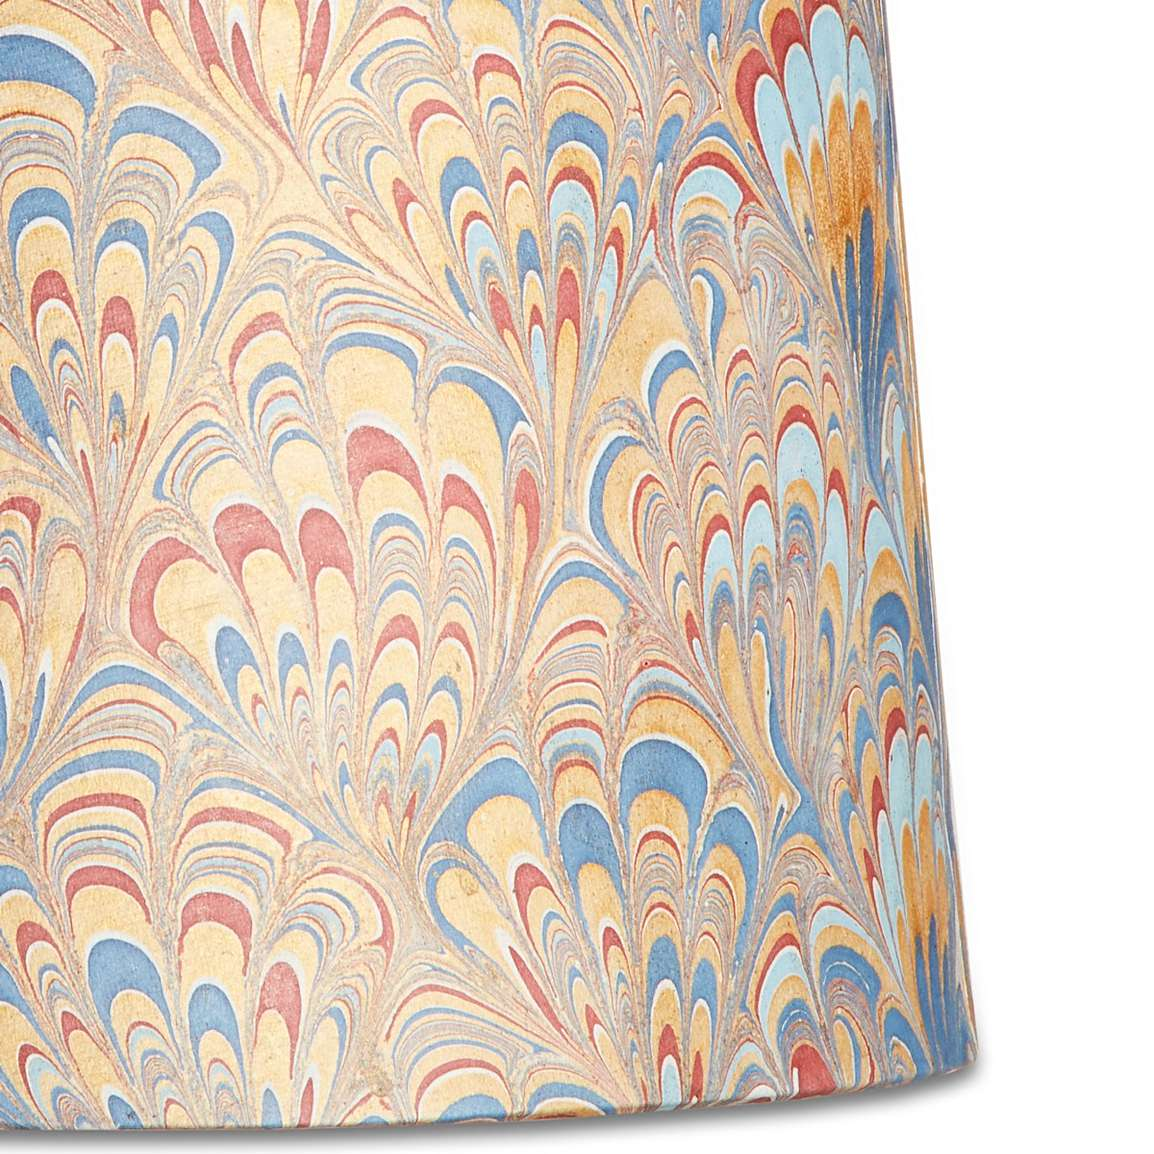 Marble Paper Lampshade in Gold & Pink